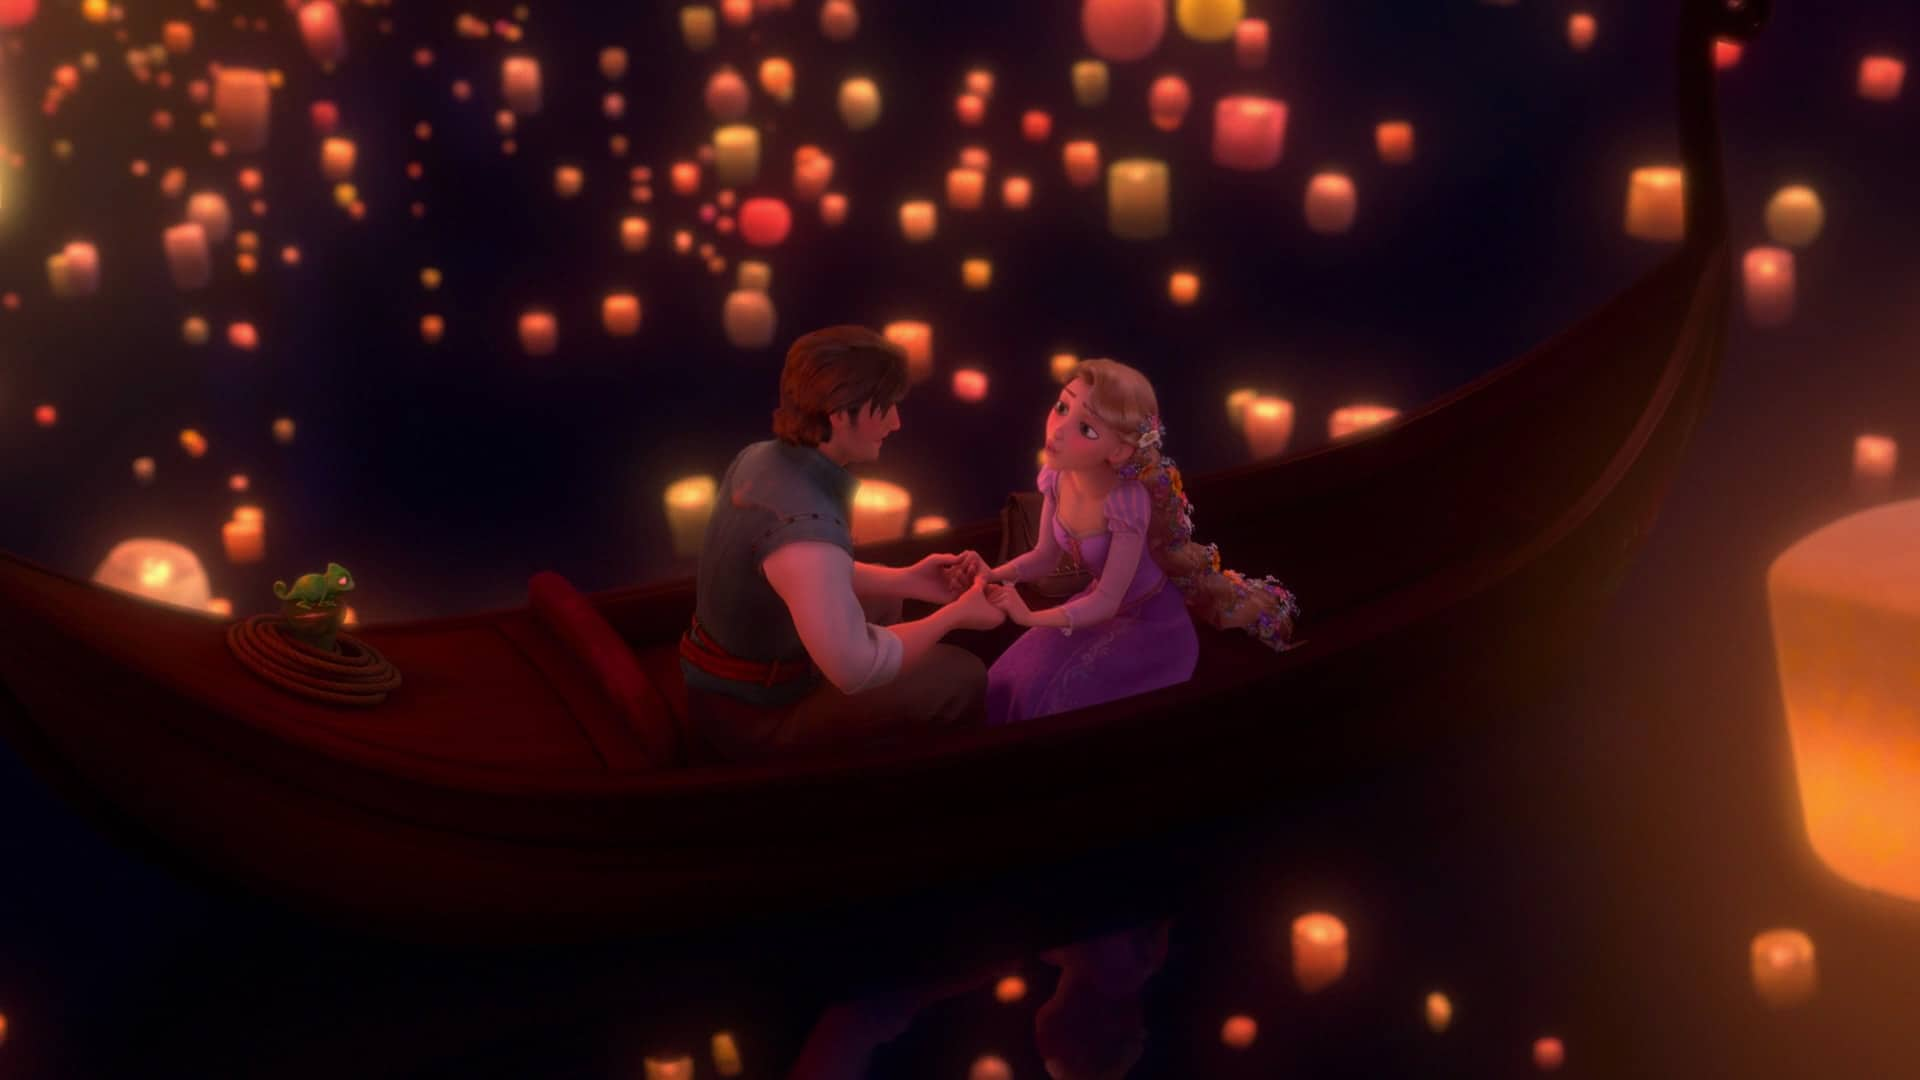 I-See-The-Light-3-flynn-and-rapunzel-35423114-1920-1080